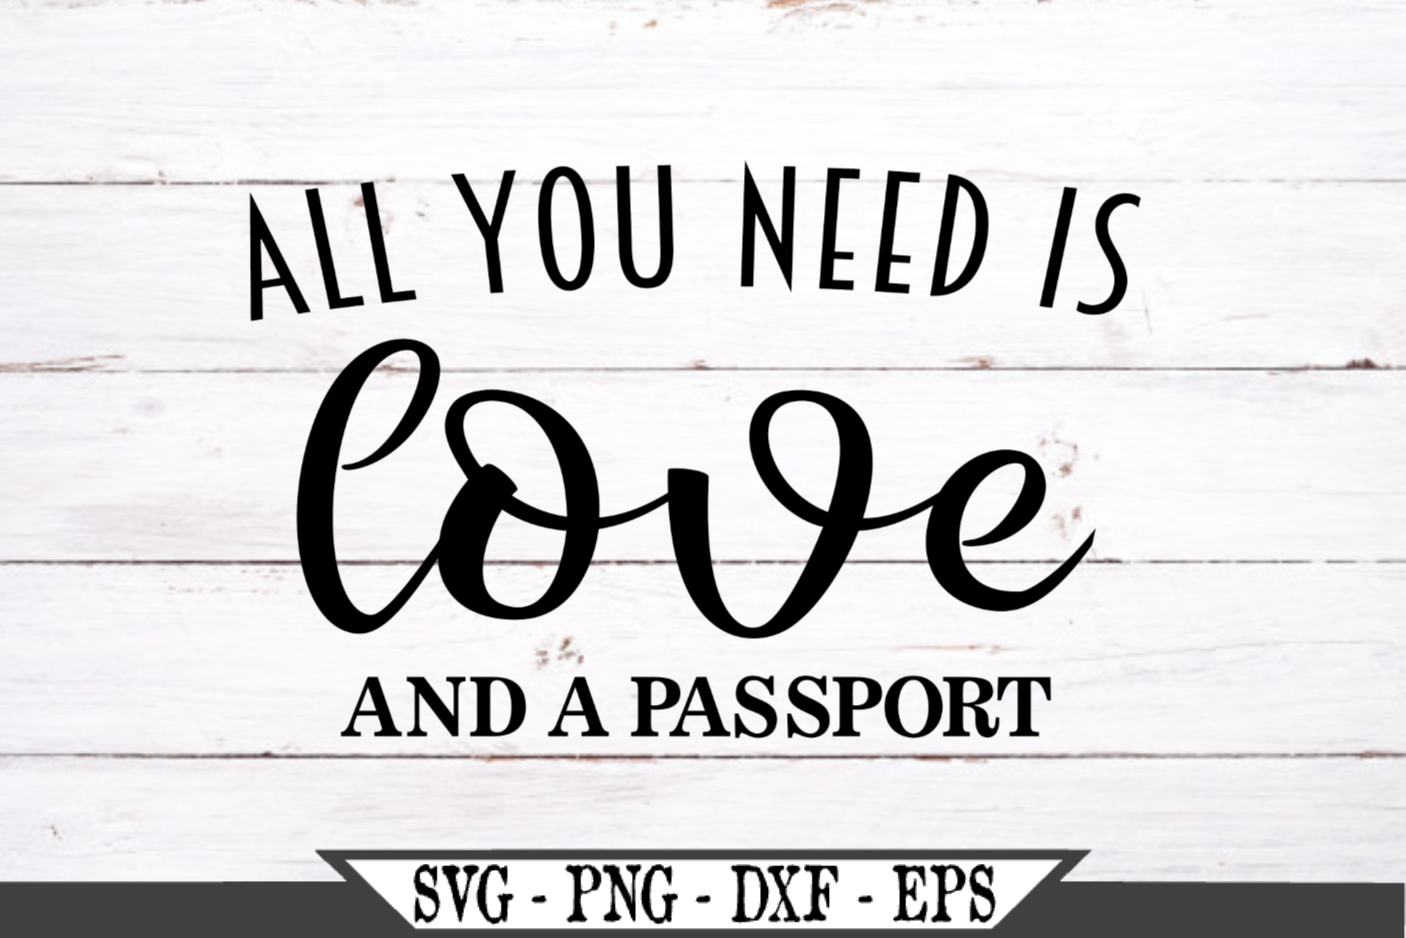 All You Need Is Love And A Passport SVG example image 2